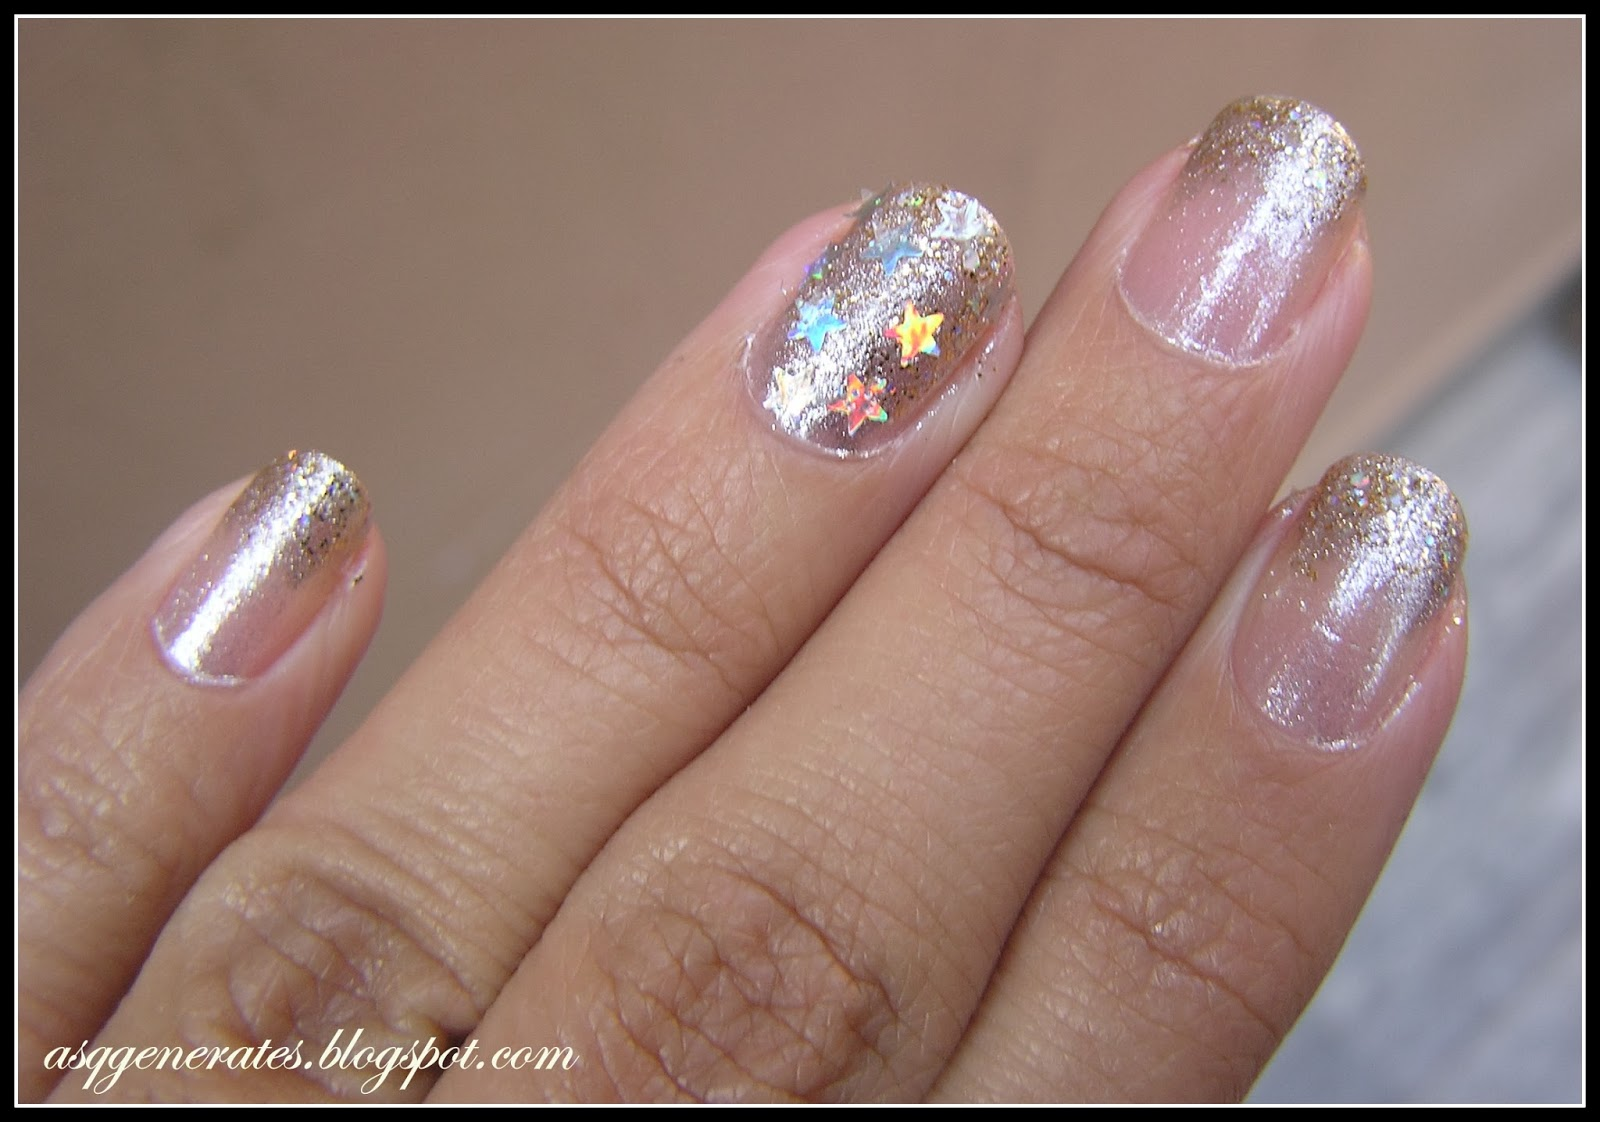 Nail art how to new year eve 2014 inspired asqgenerates style gold and silver glitter nail art prinsesfo Gallery